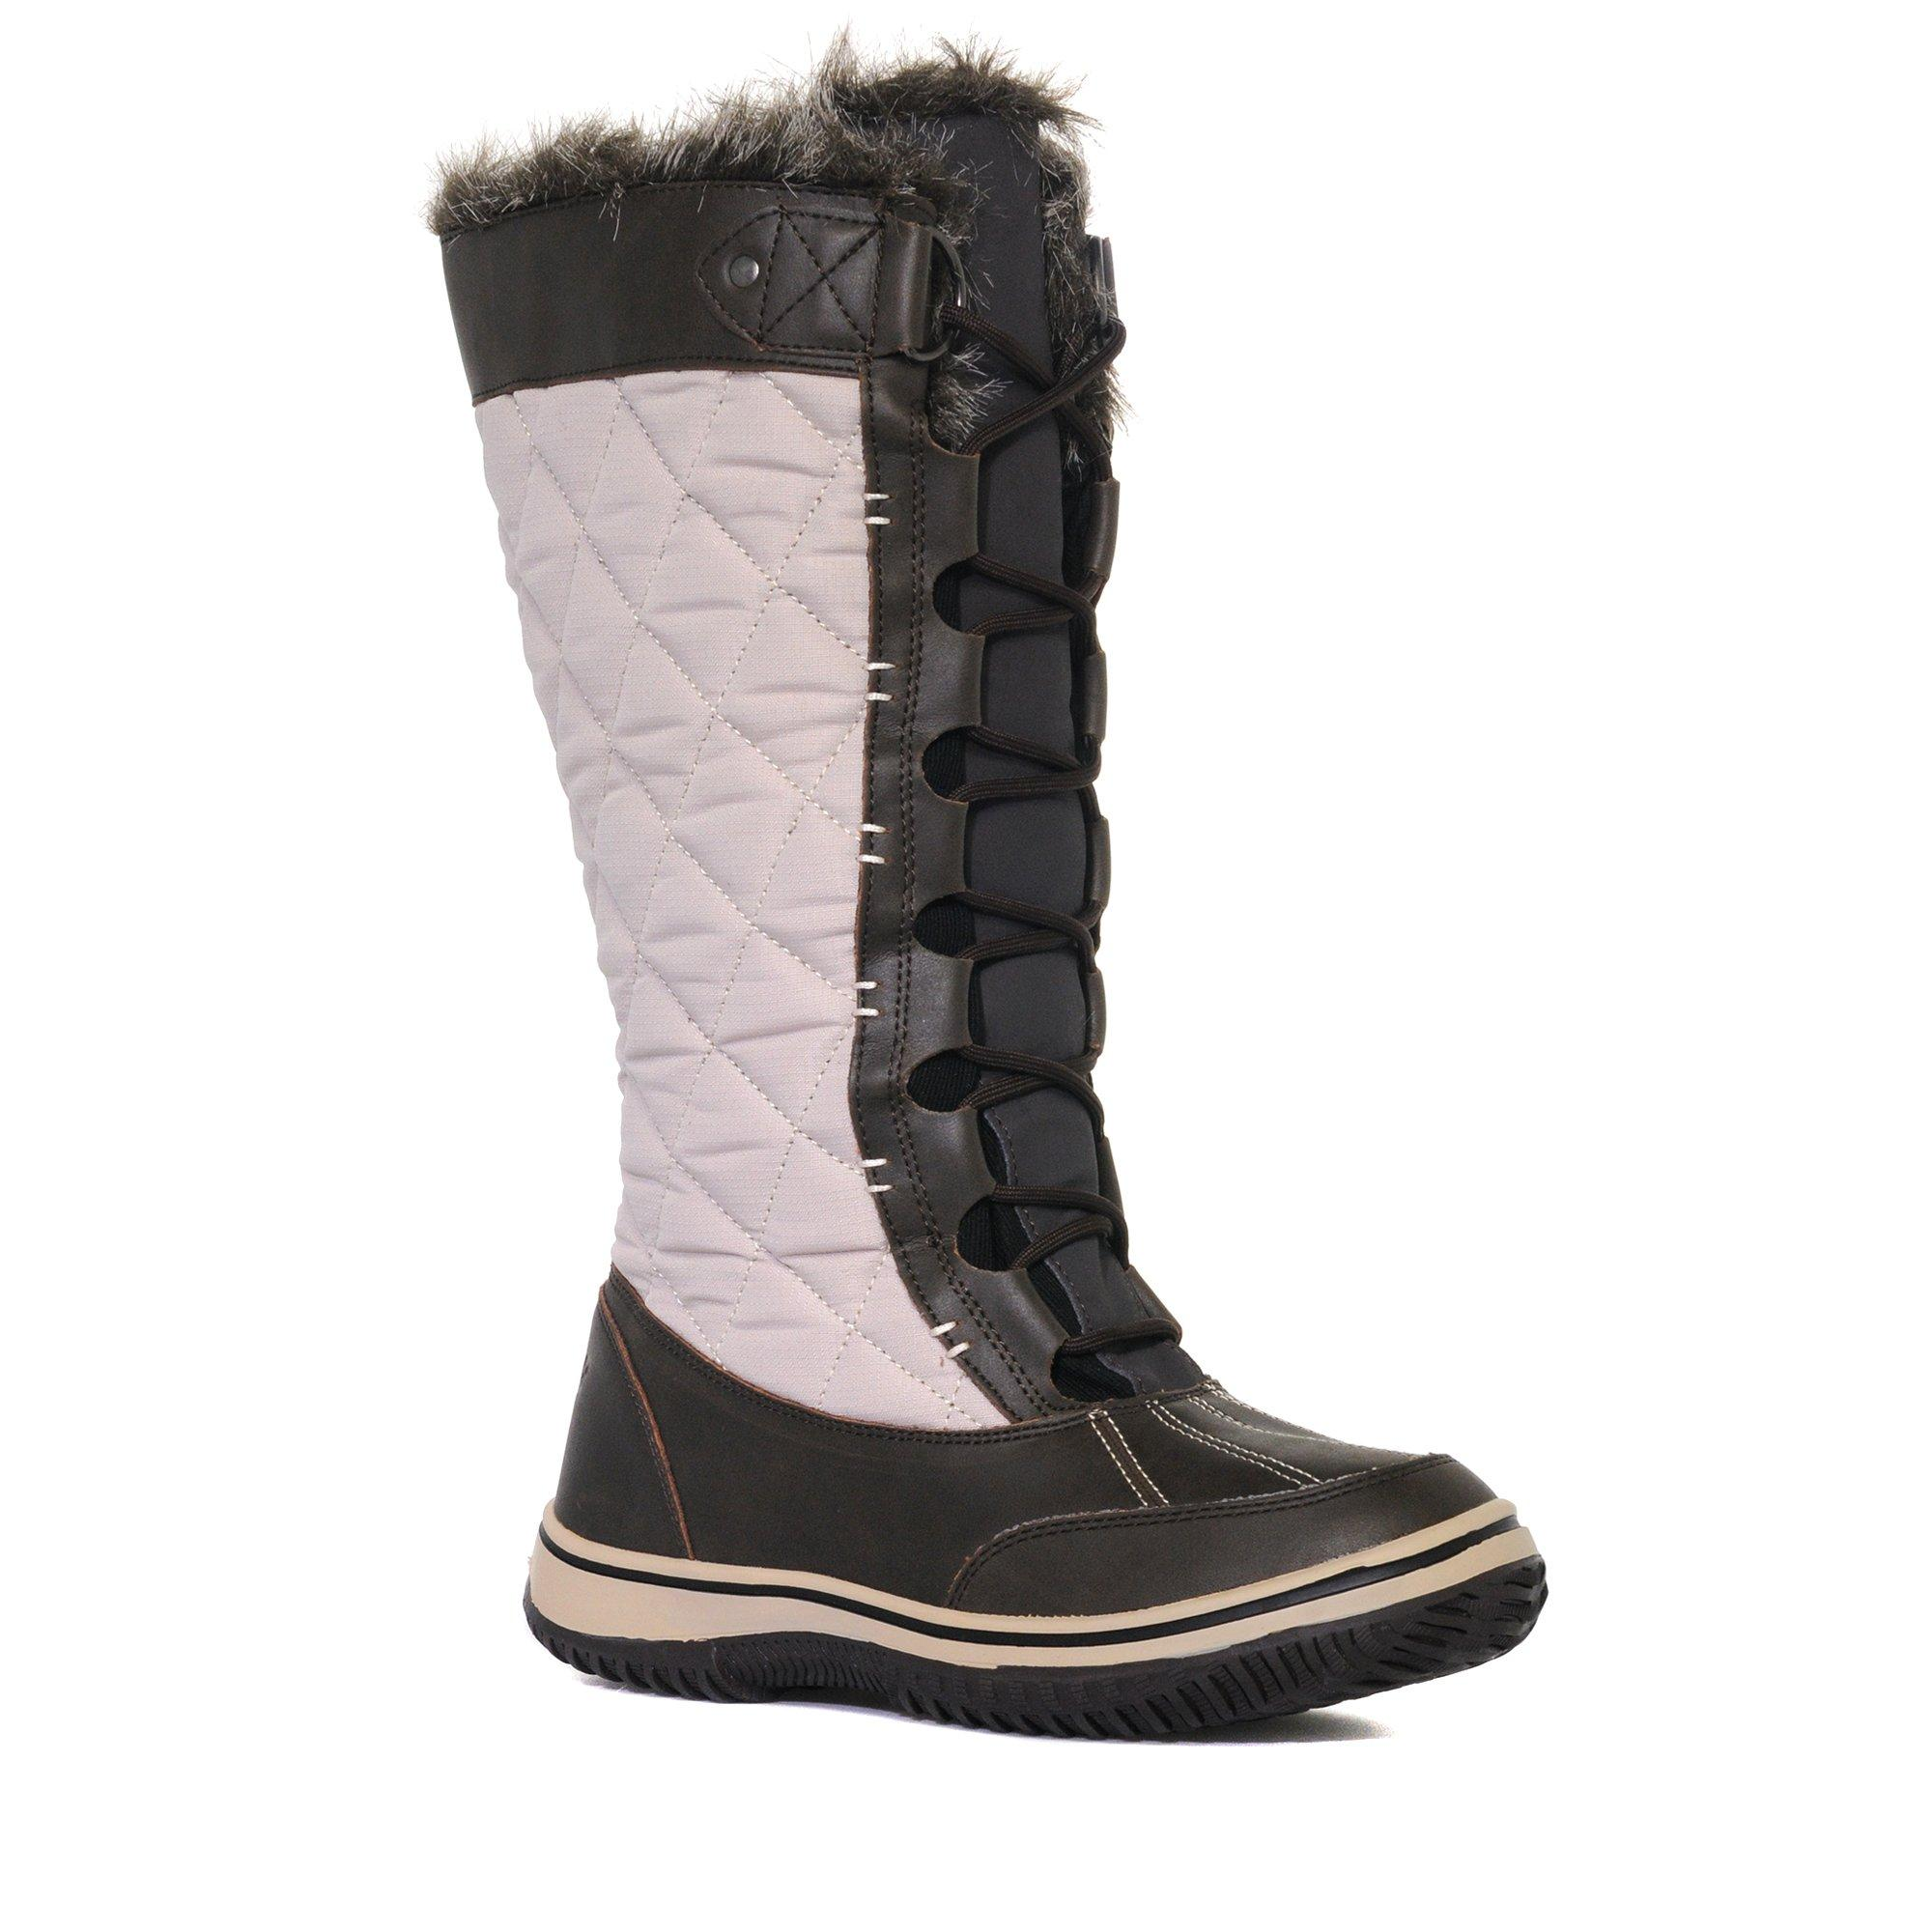 Snow Boots Size 9 Womens AGFXJcfW